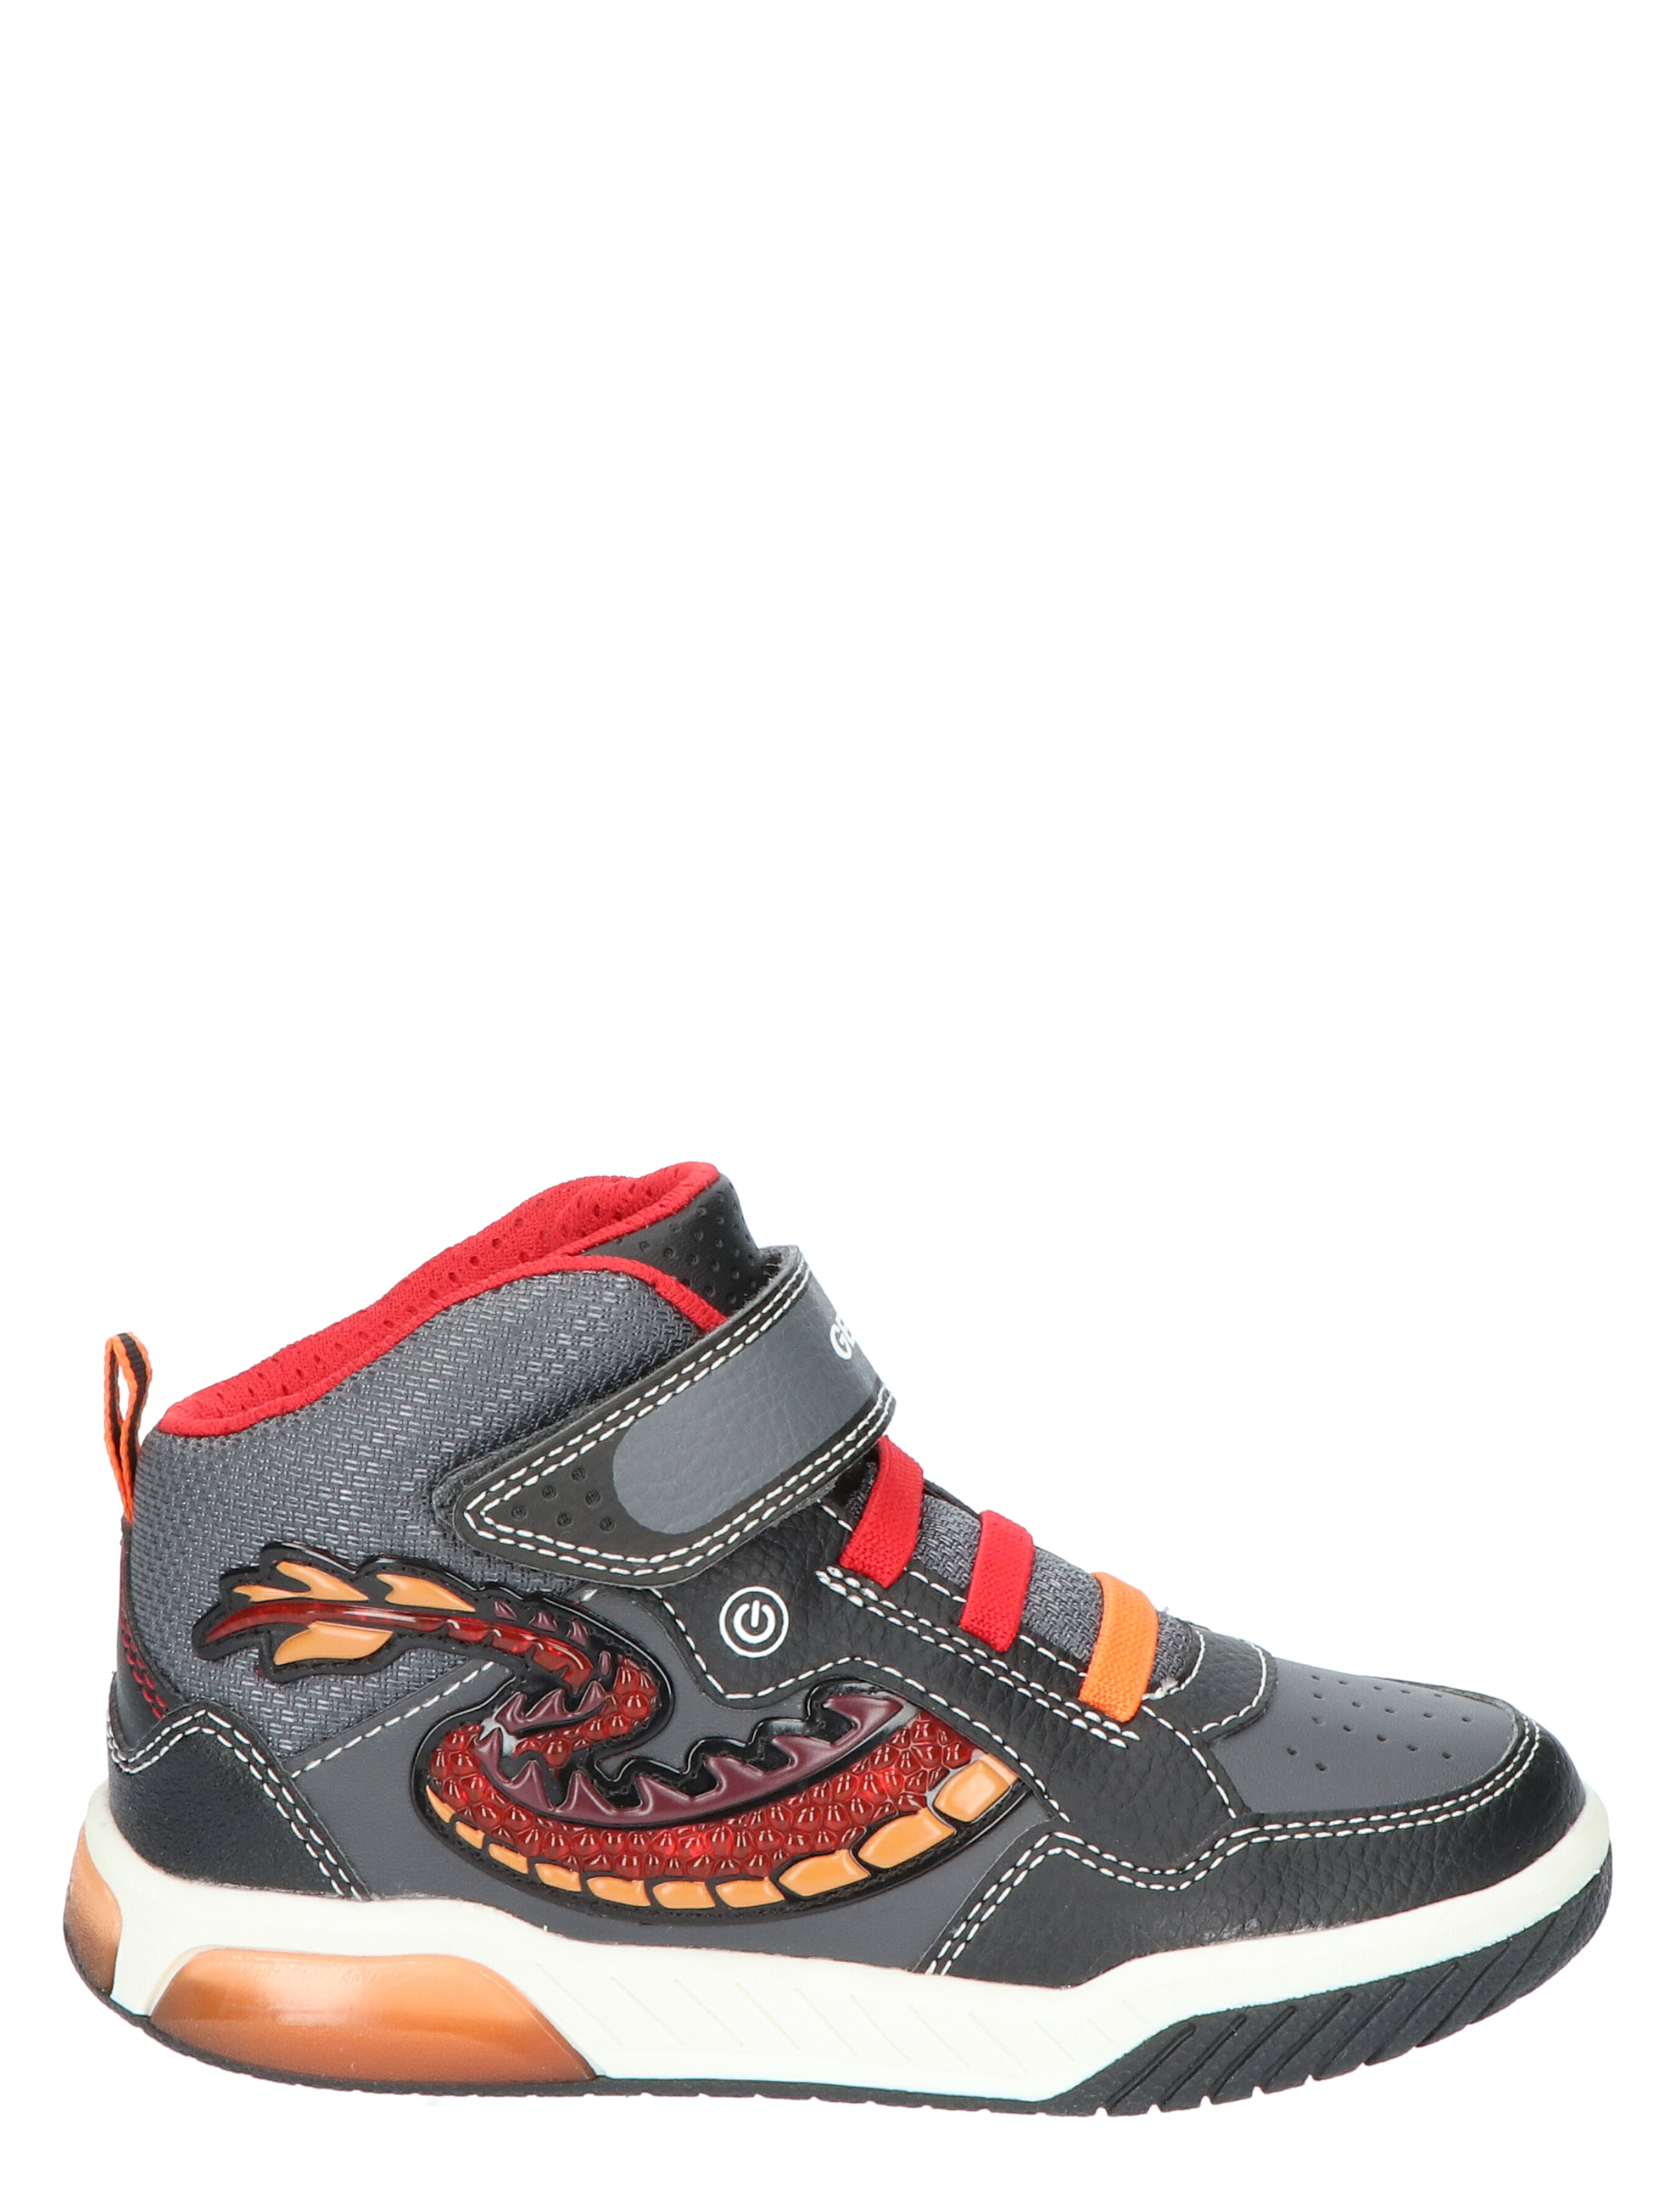 Geox J949CE Black Red Veter boots